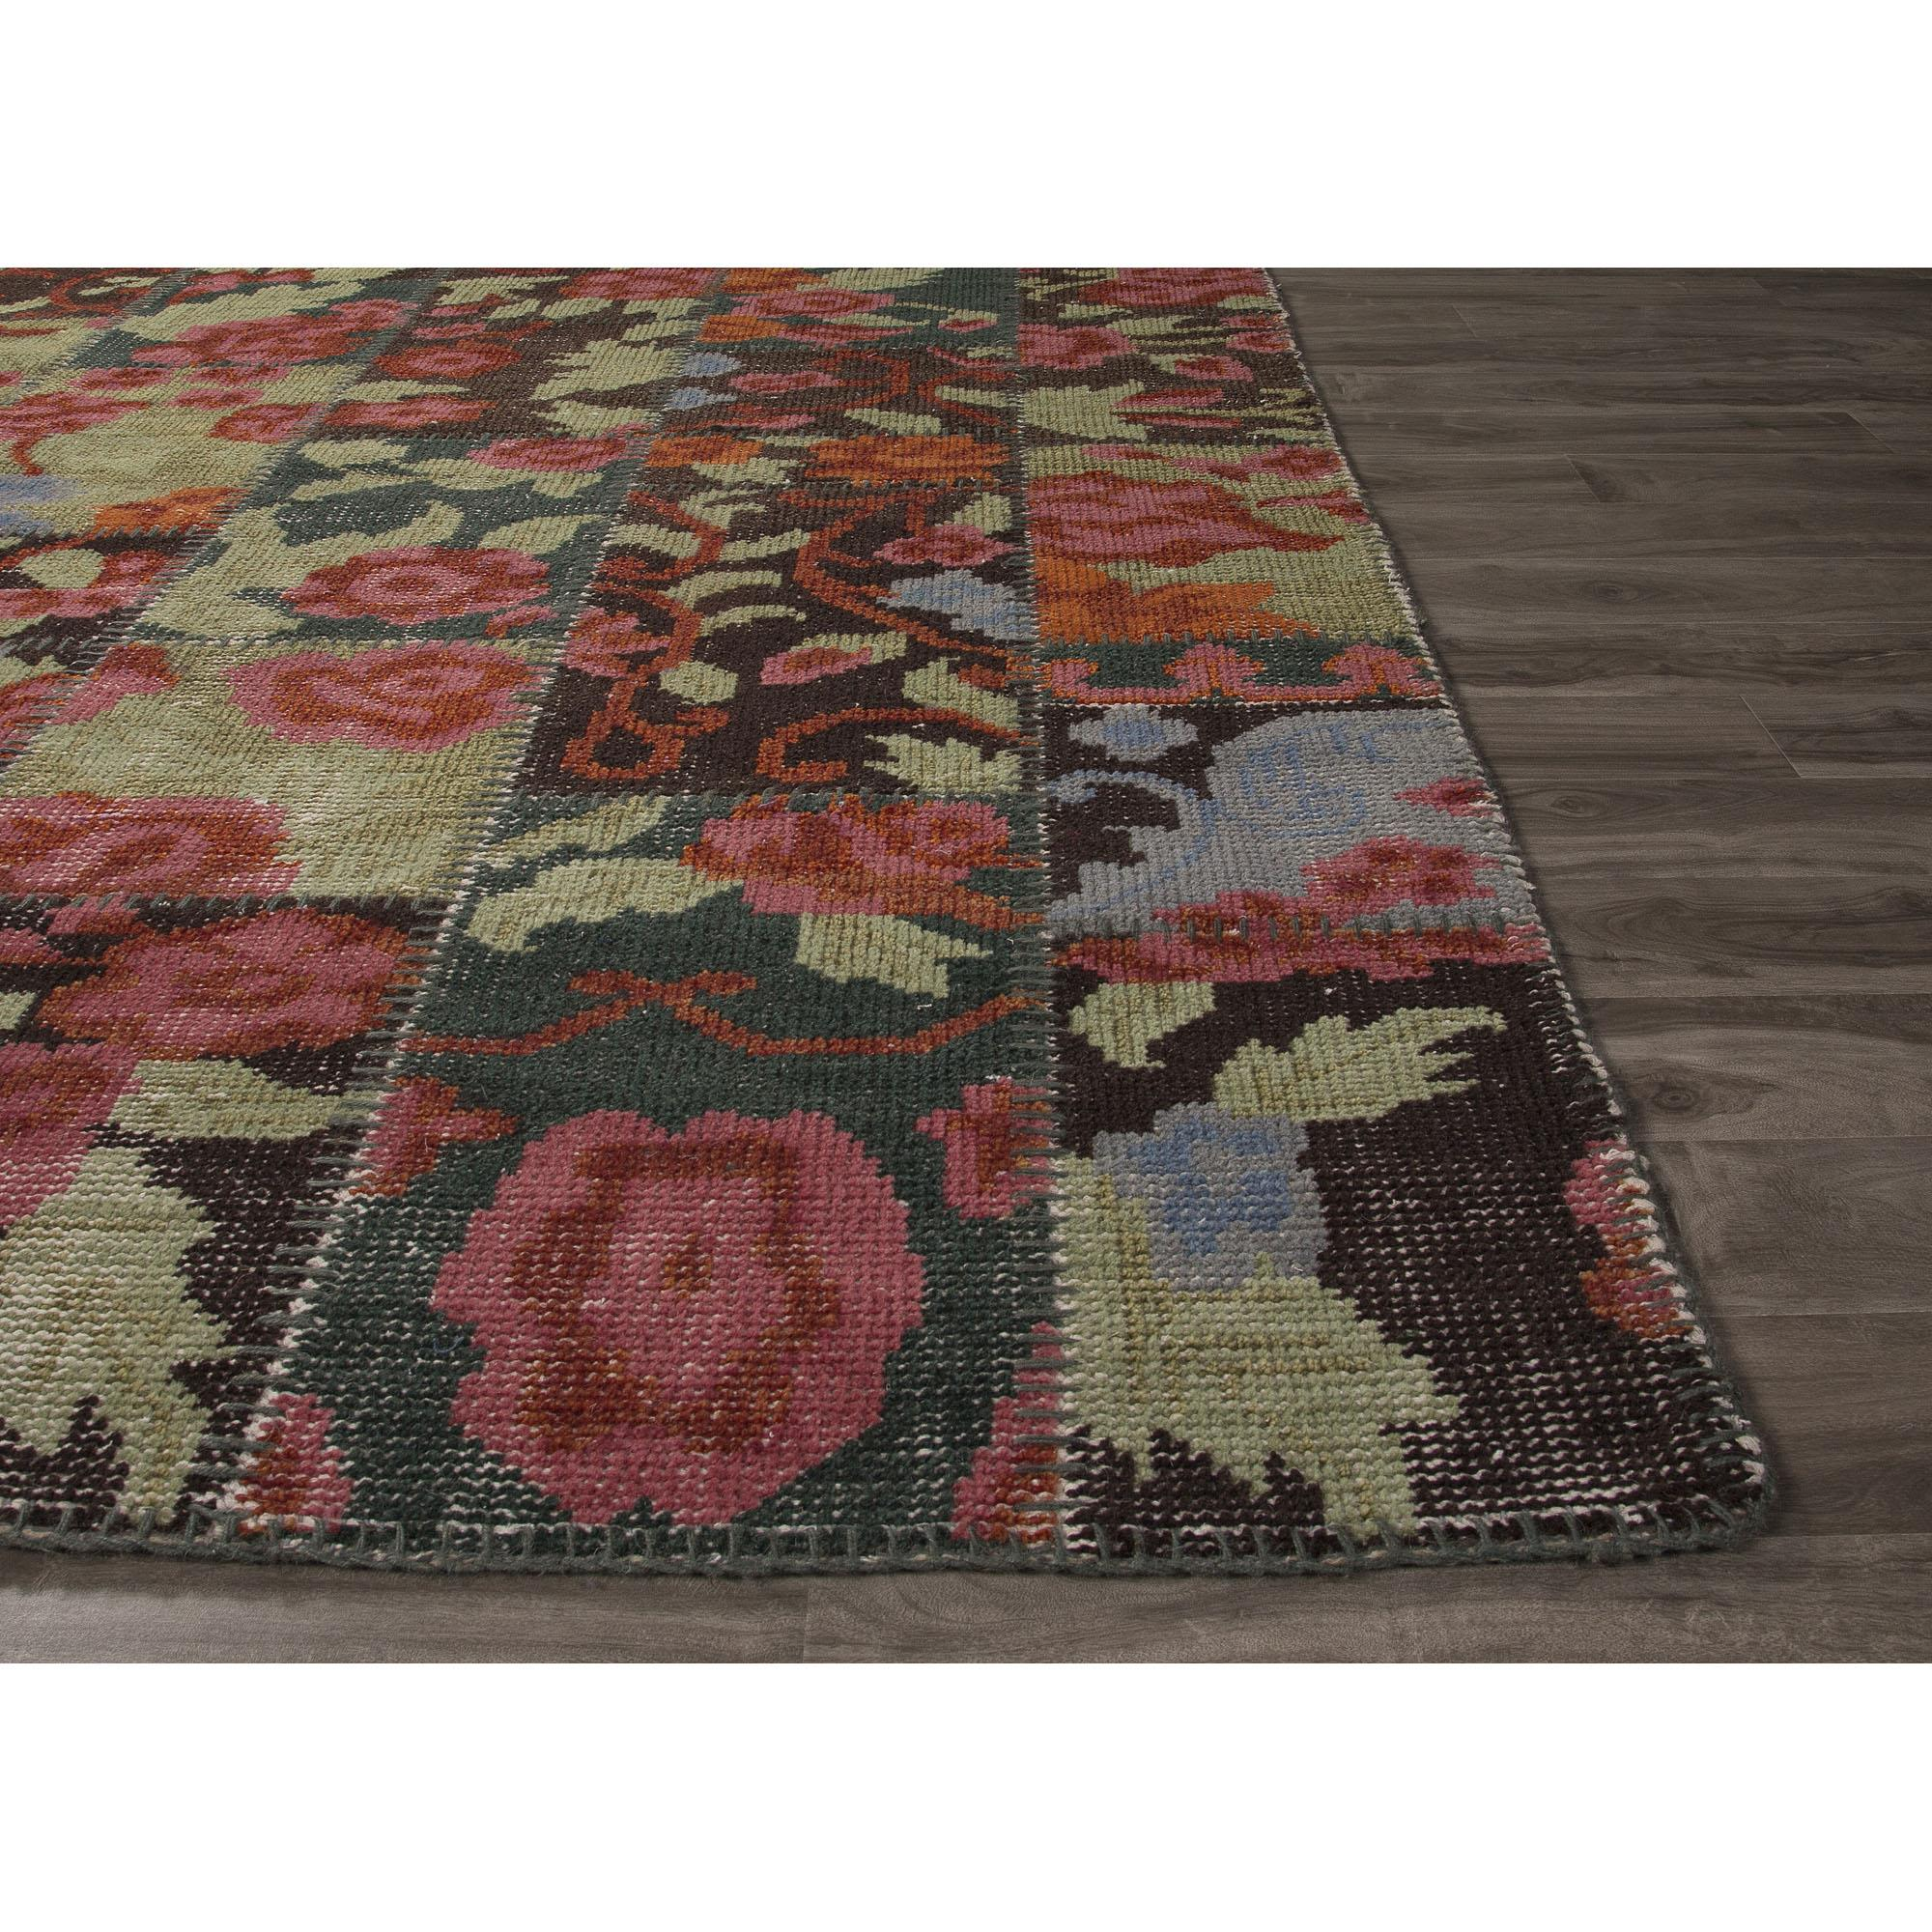 Jaipur Rugs Cheshire By Rug Republic Rug123120 5 X 8 Rug